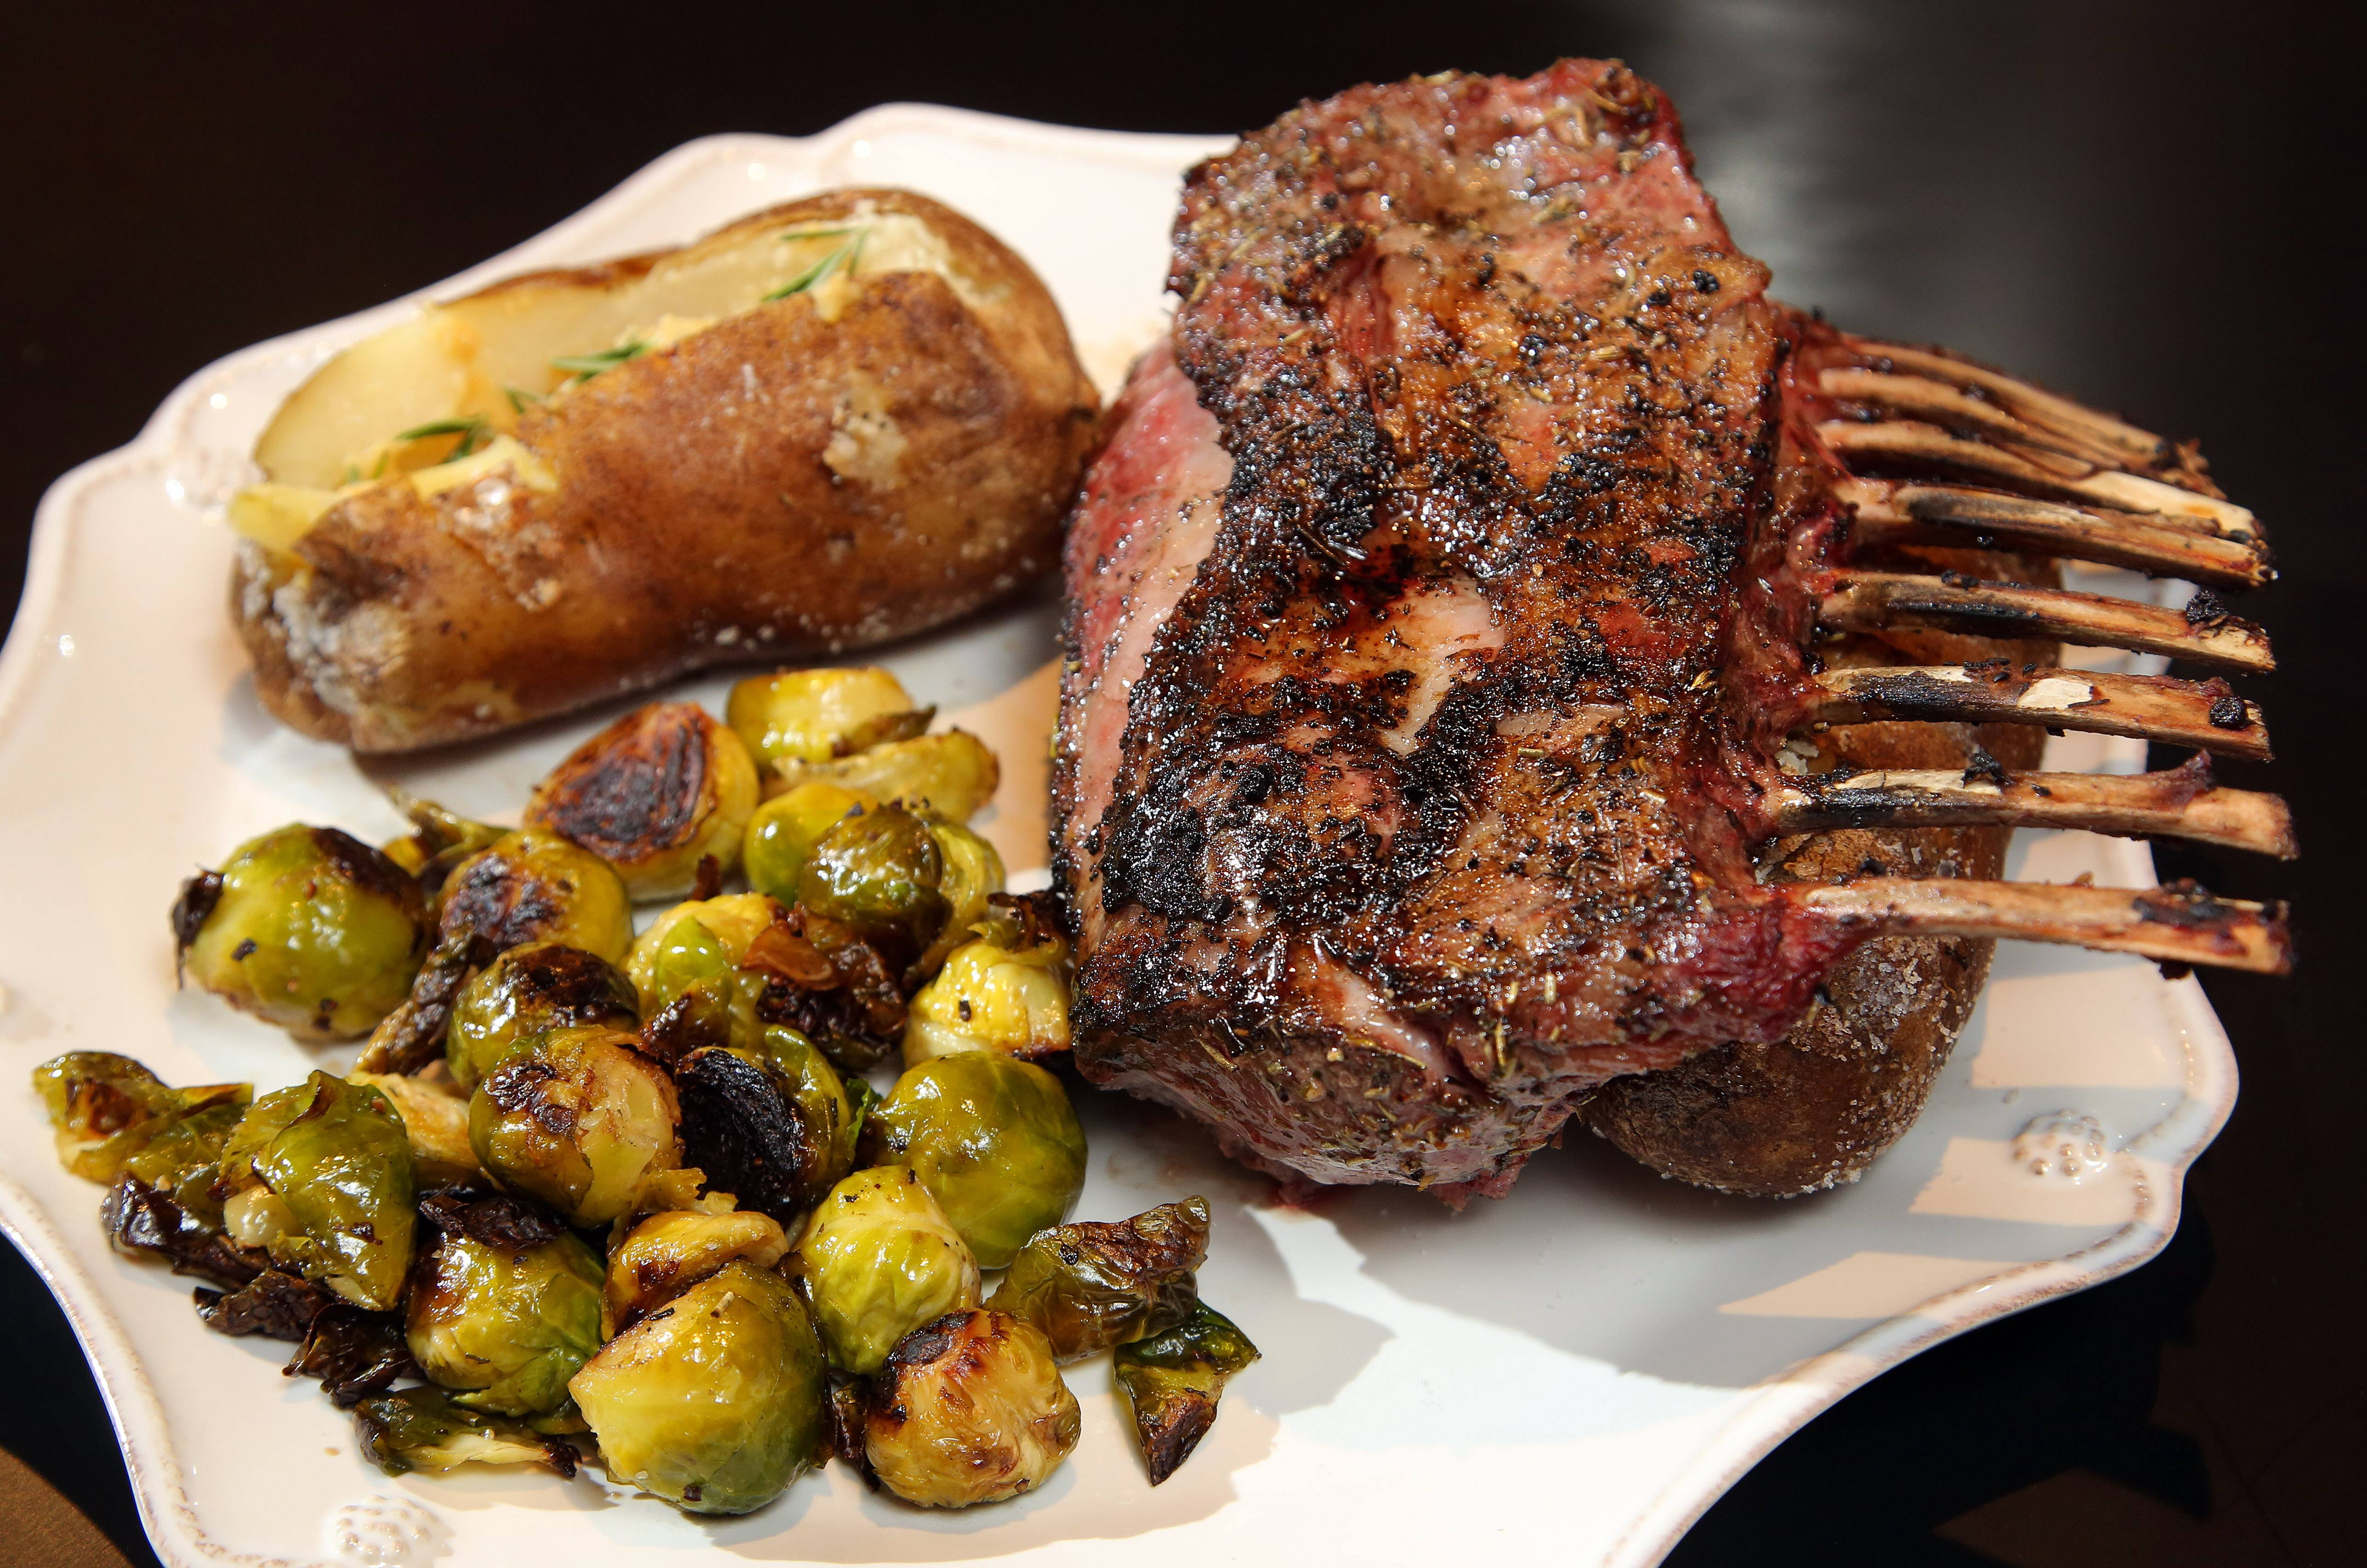 Sue Ascher and John Harty of Riverwoods made rack of lamb with roasted Brussels sprouts and baked potato.